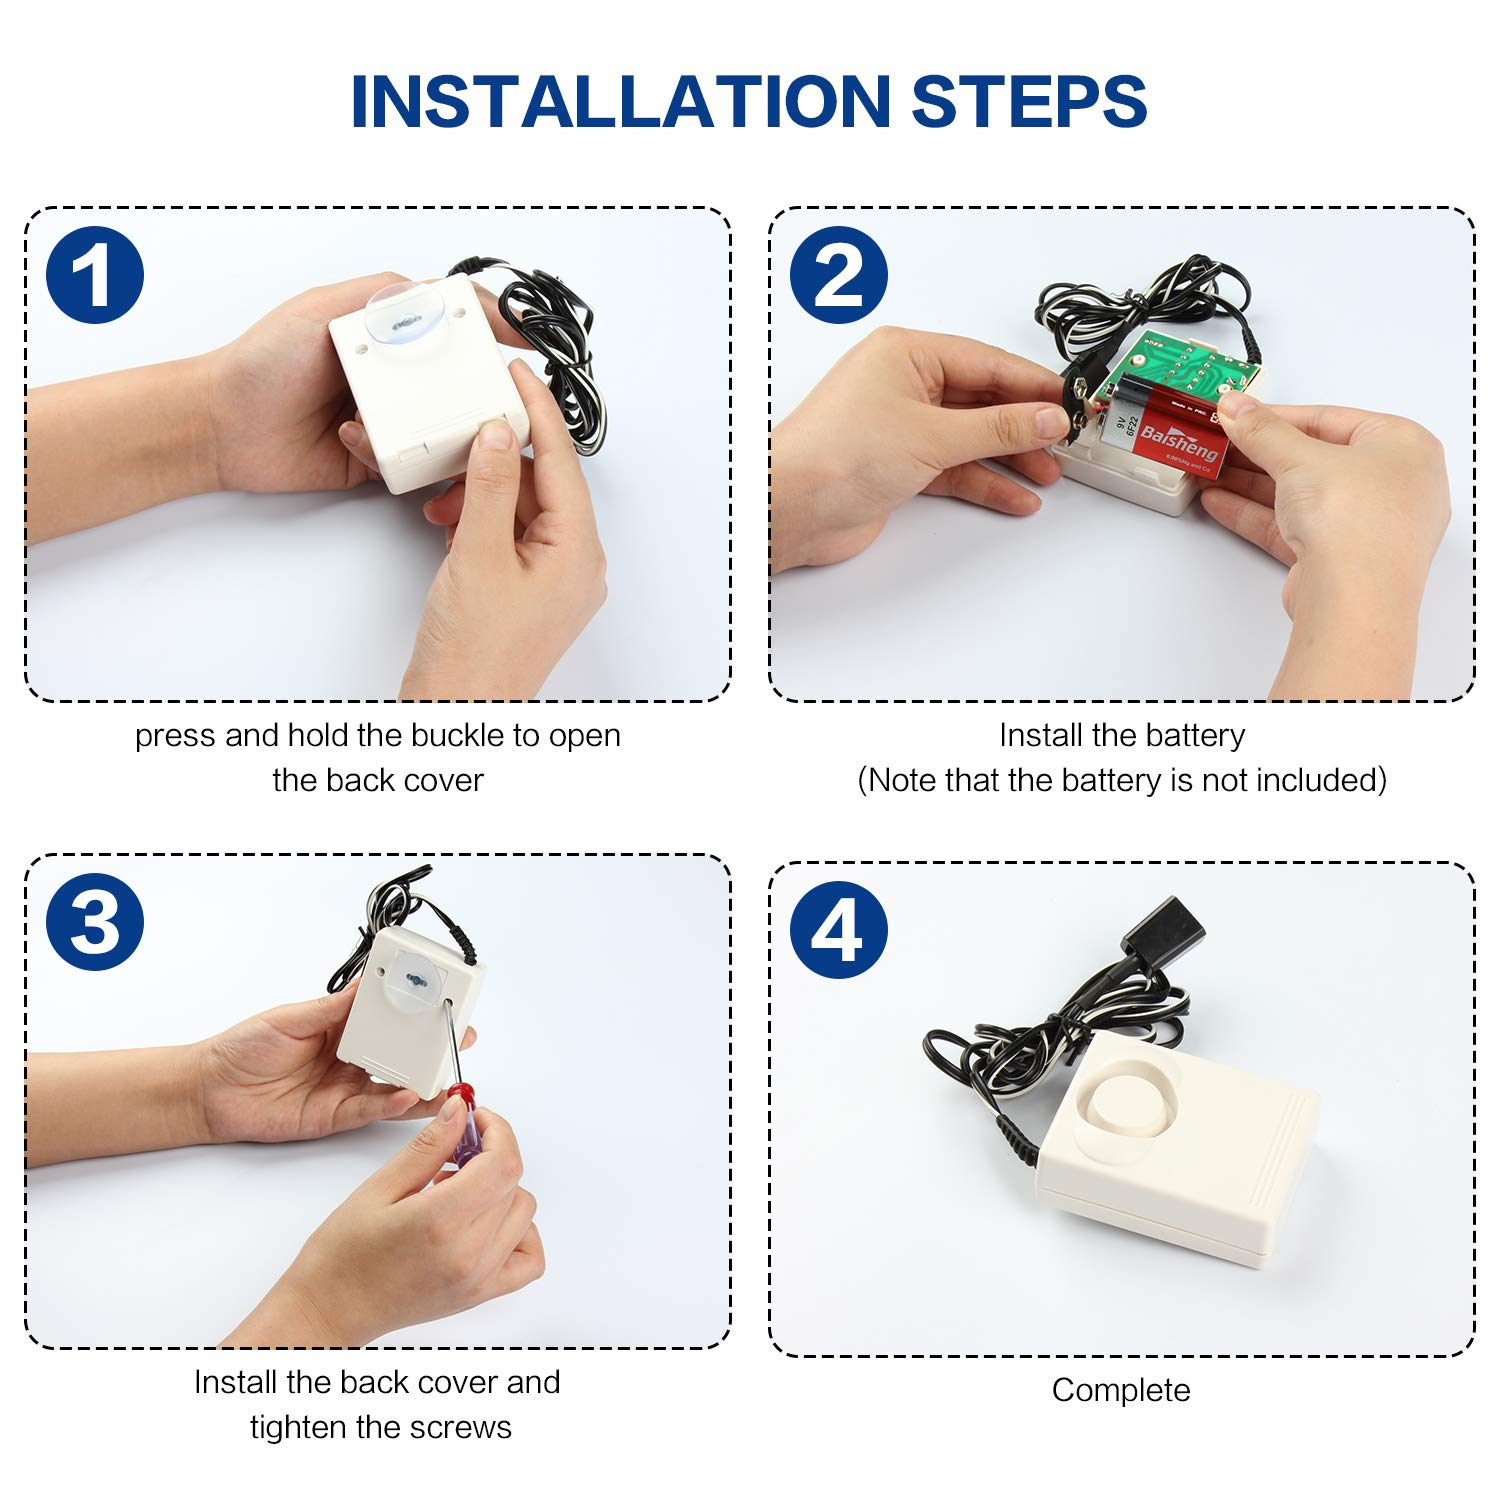 Water Pipe Leak Alarm Swimming Pool Water Level Bathroom Suitable for Kitchen ATOPSUN Water Leak Detector Alarm and Sensor Alarm IN07A Battery Powered Include Battery 120dB Detection